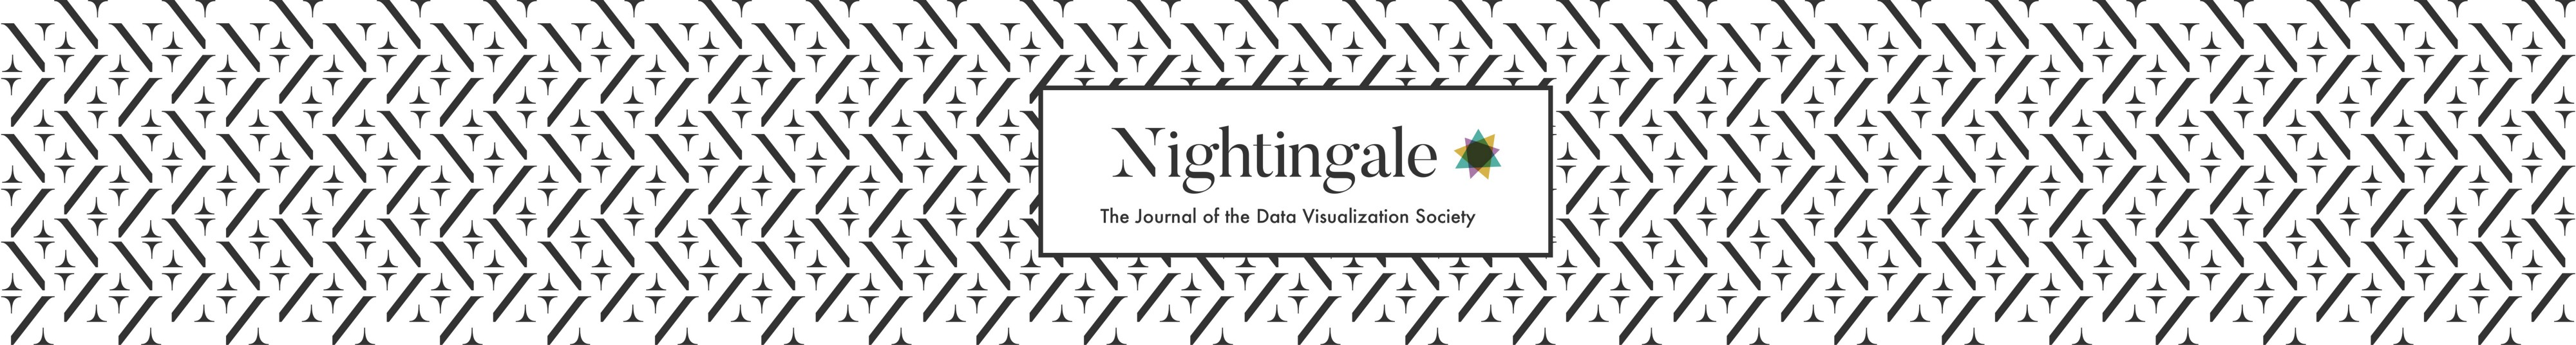 Nightingale. The journal of the Data Visualization Society